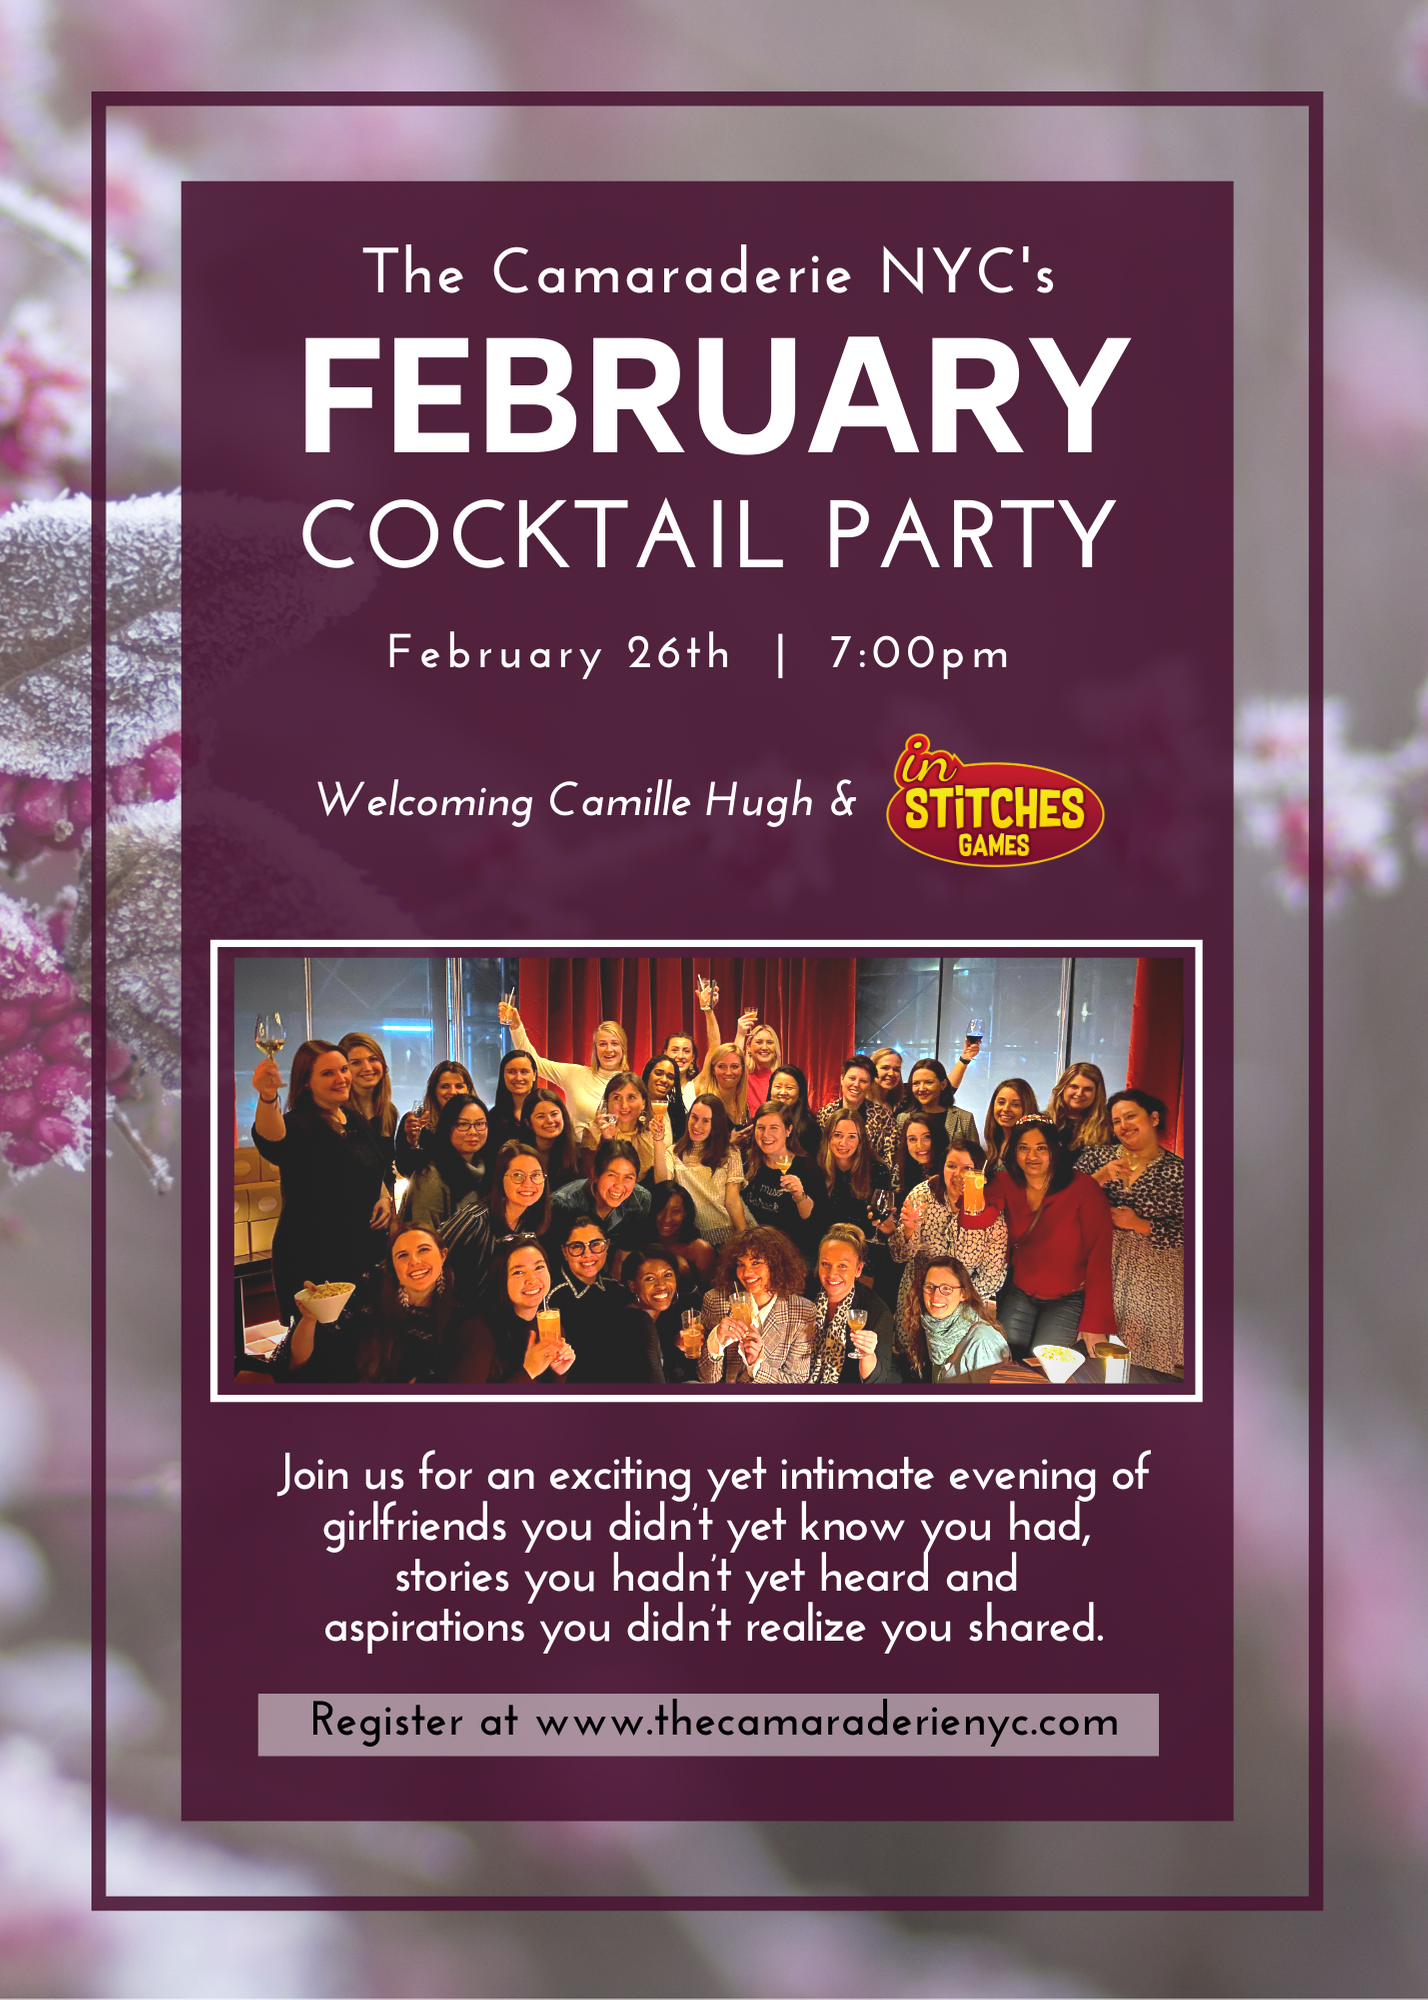 February Cocktail Party with The Camaraderie NYC